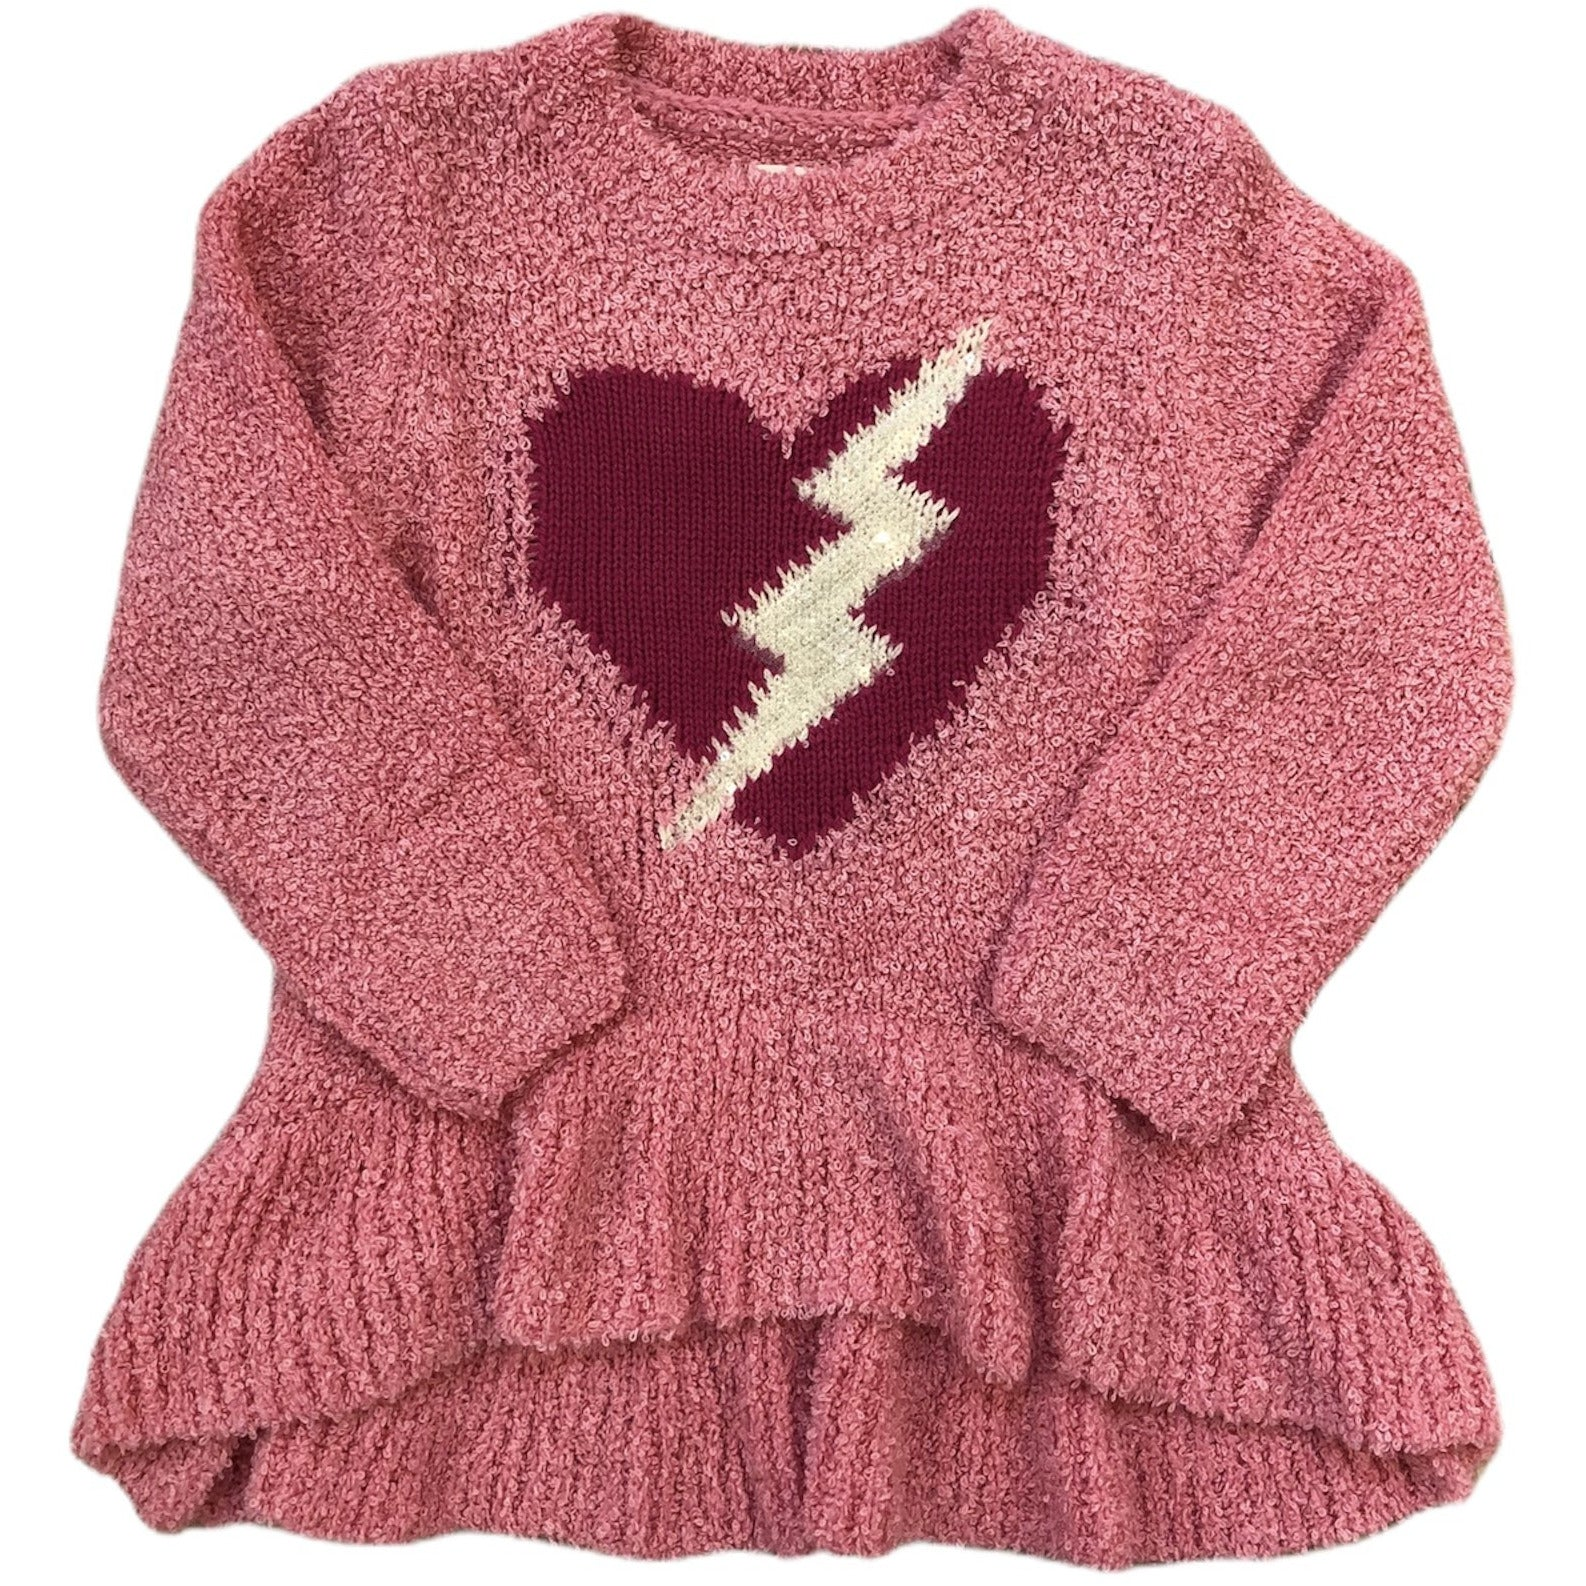 Fuzzy pink sweater with heart and sequin lightning detail and ruffles at bottom.